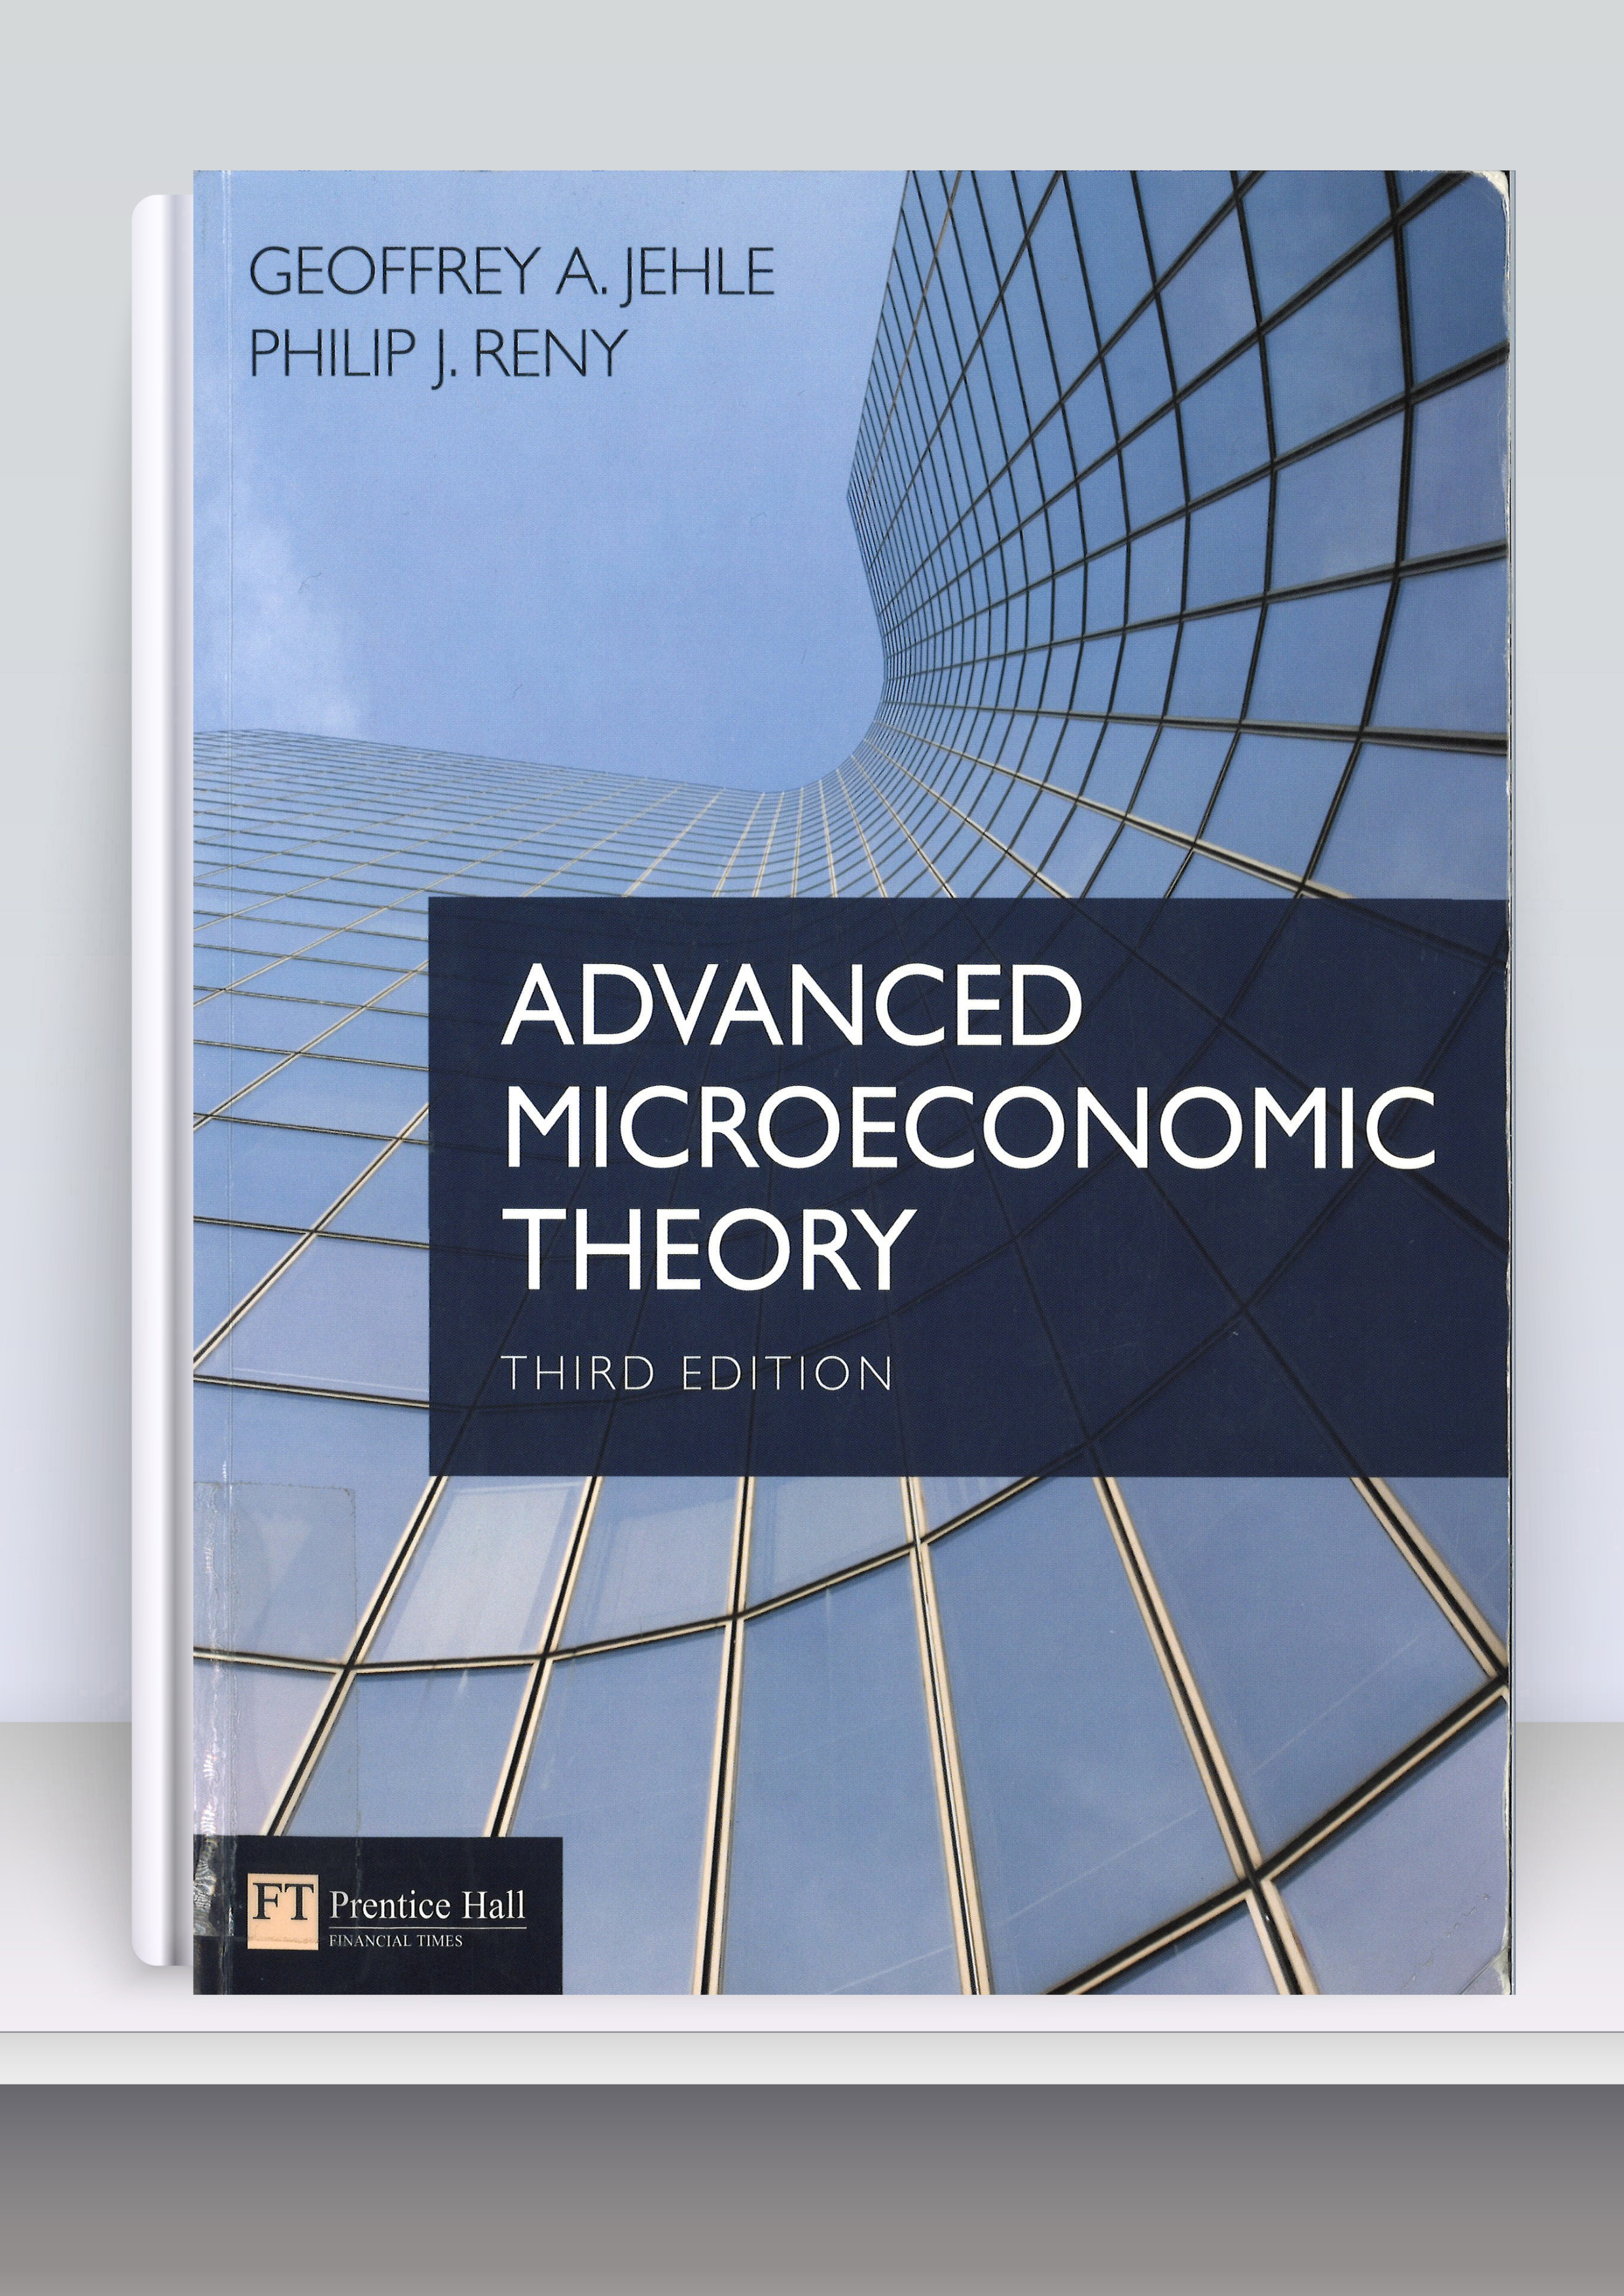 Advanced microeconomic theory